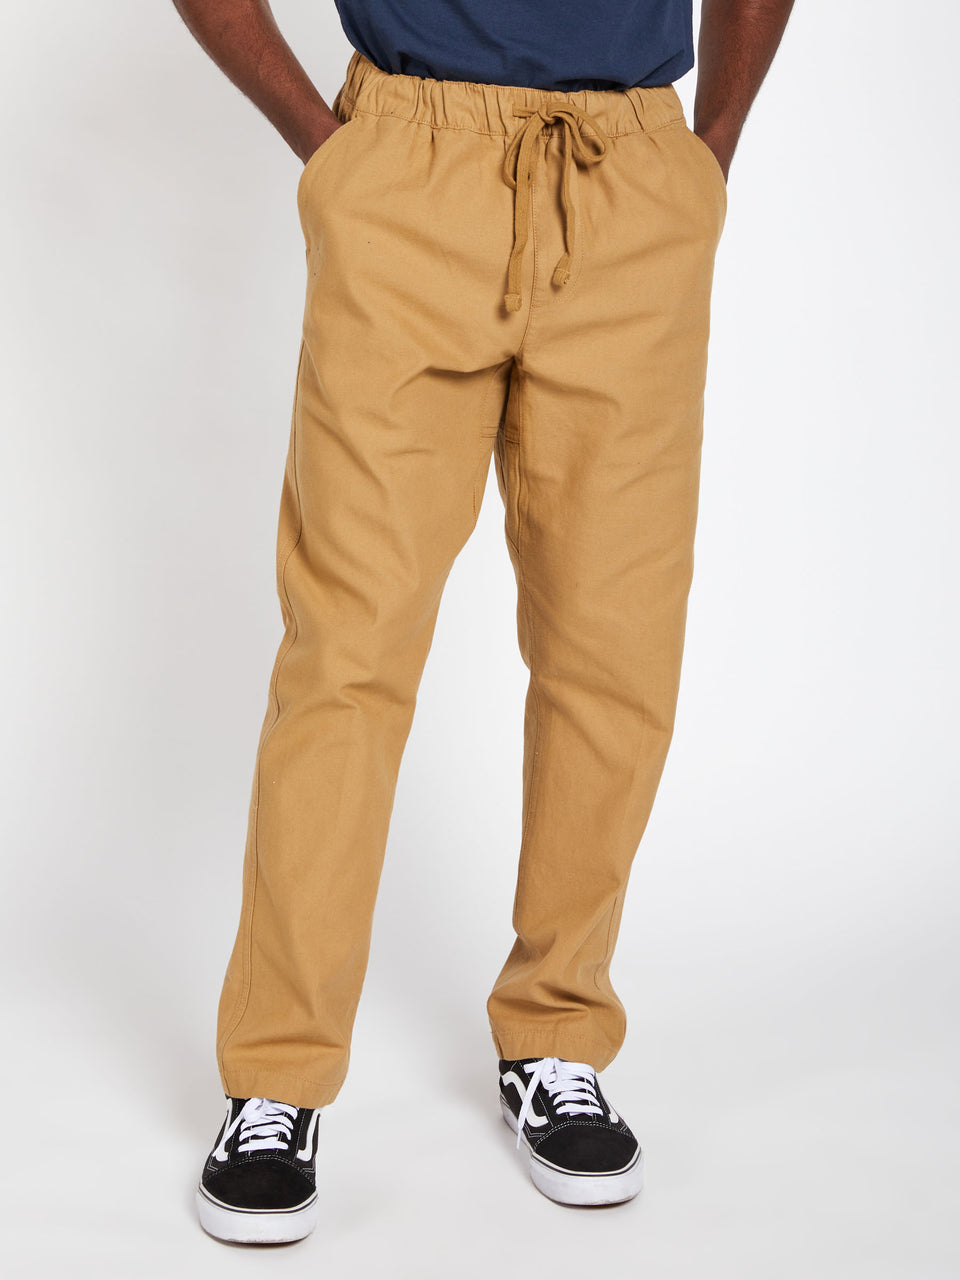 OBEY_IDEALS_ORGANIC_TRAVELER_PANT_KHAKI